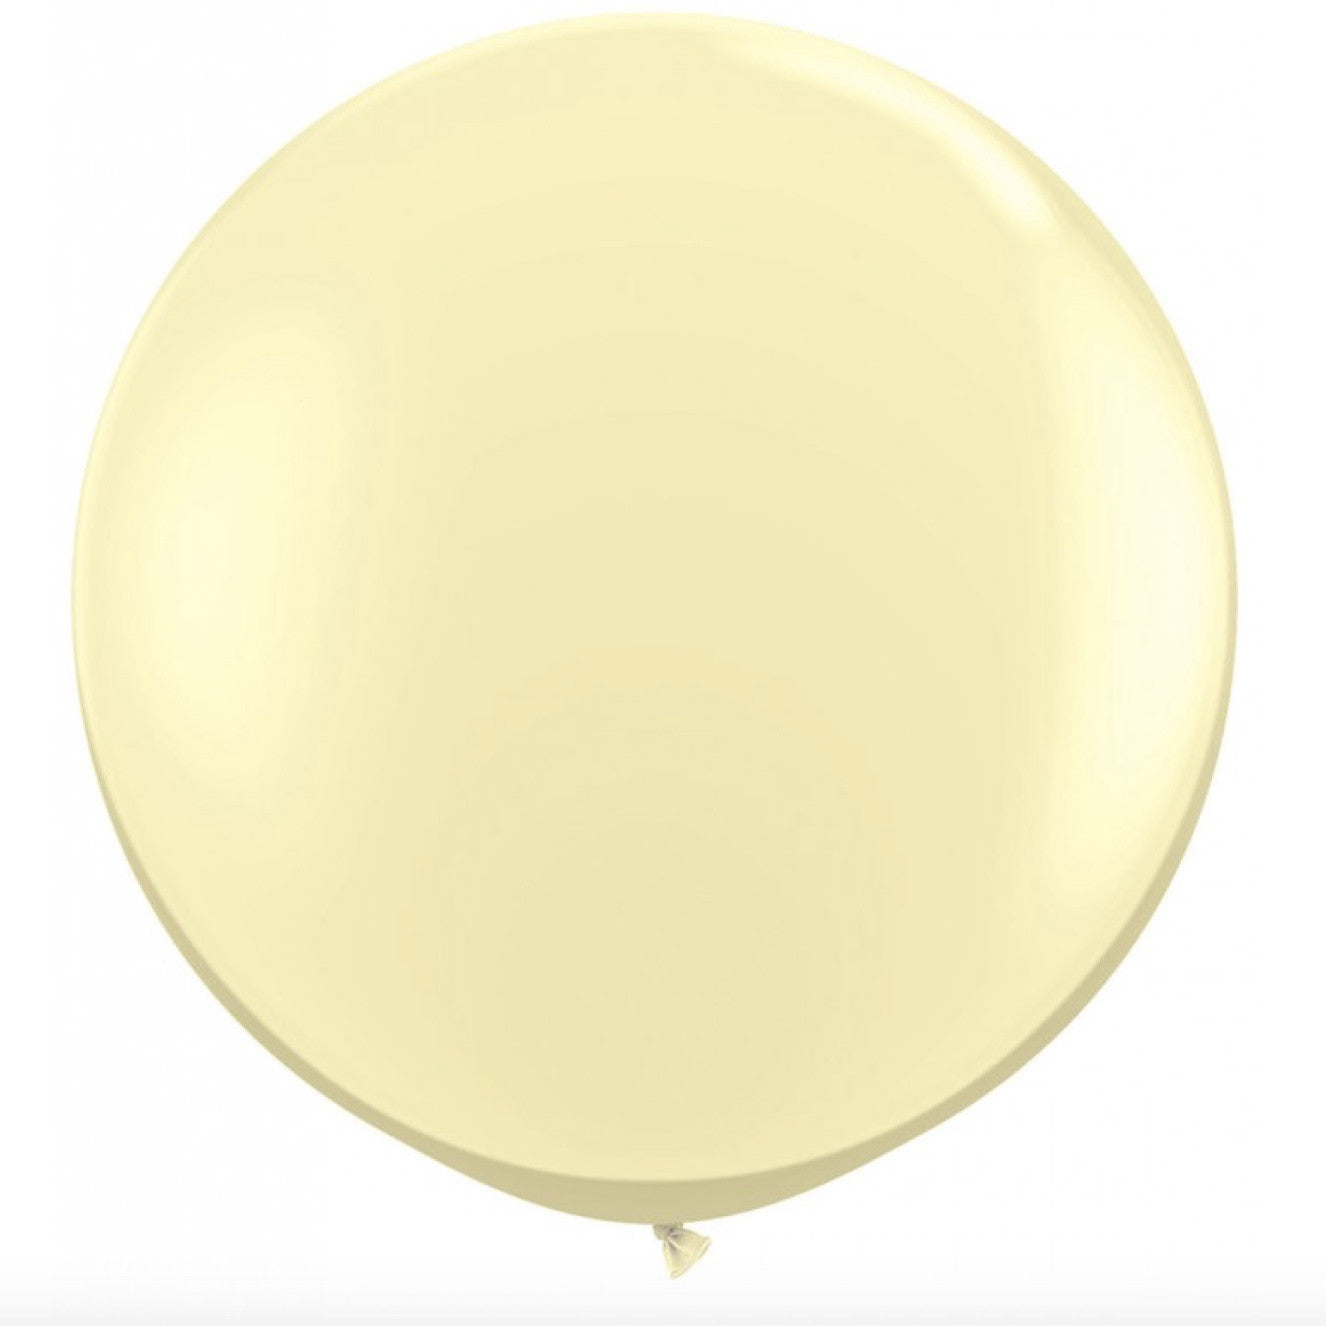 "Giant Round Balloon 30""- Pearlized Pastel Ivory, SE-Surprize Enterprize, Putti Fine Furnishings"